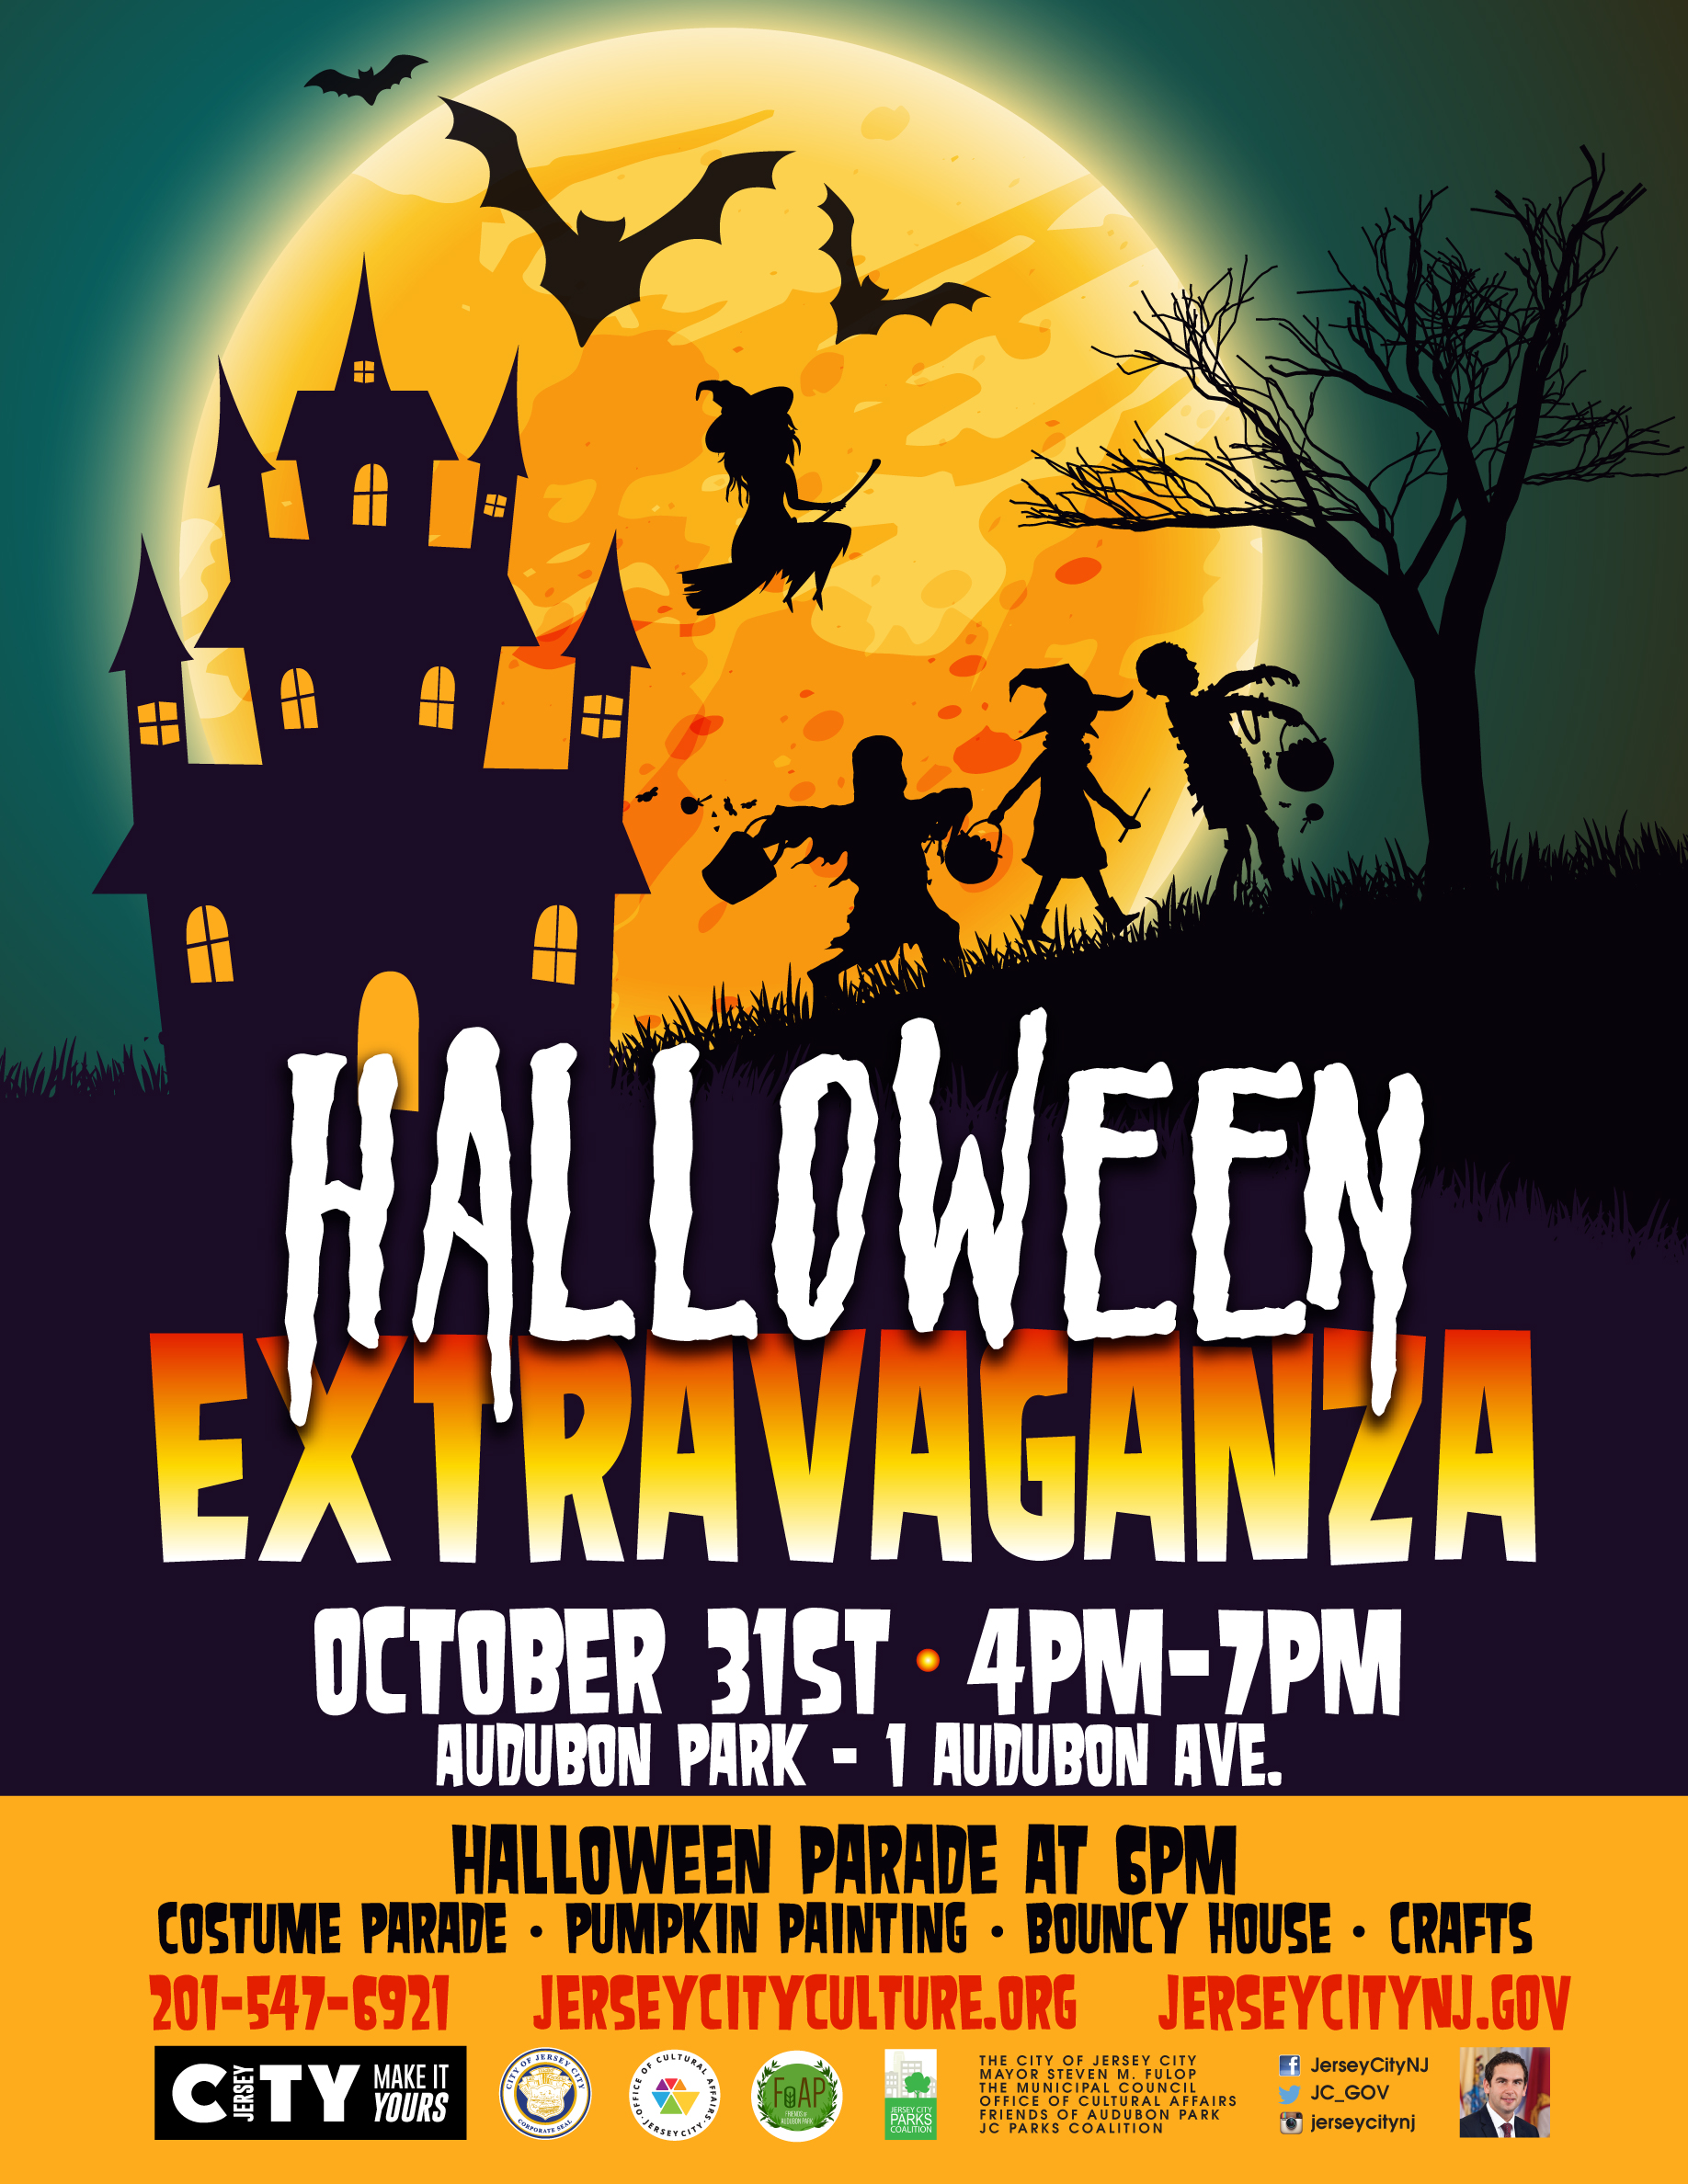 Halloween Extravaganza - The Office of Cultural Affairs